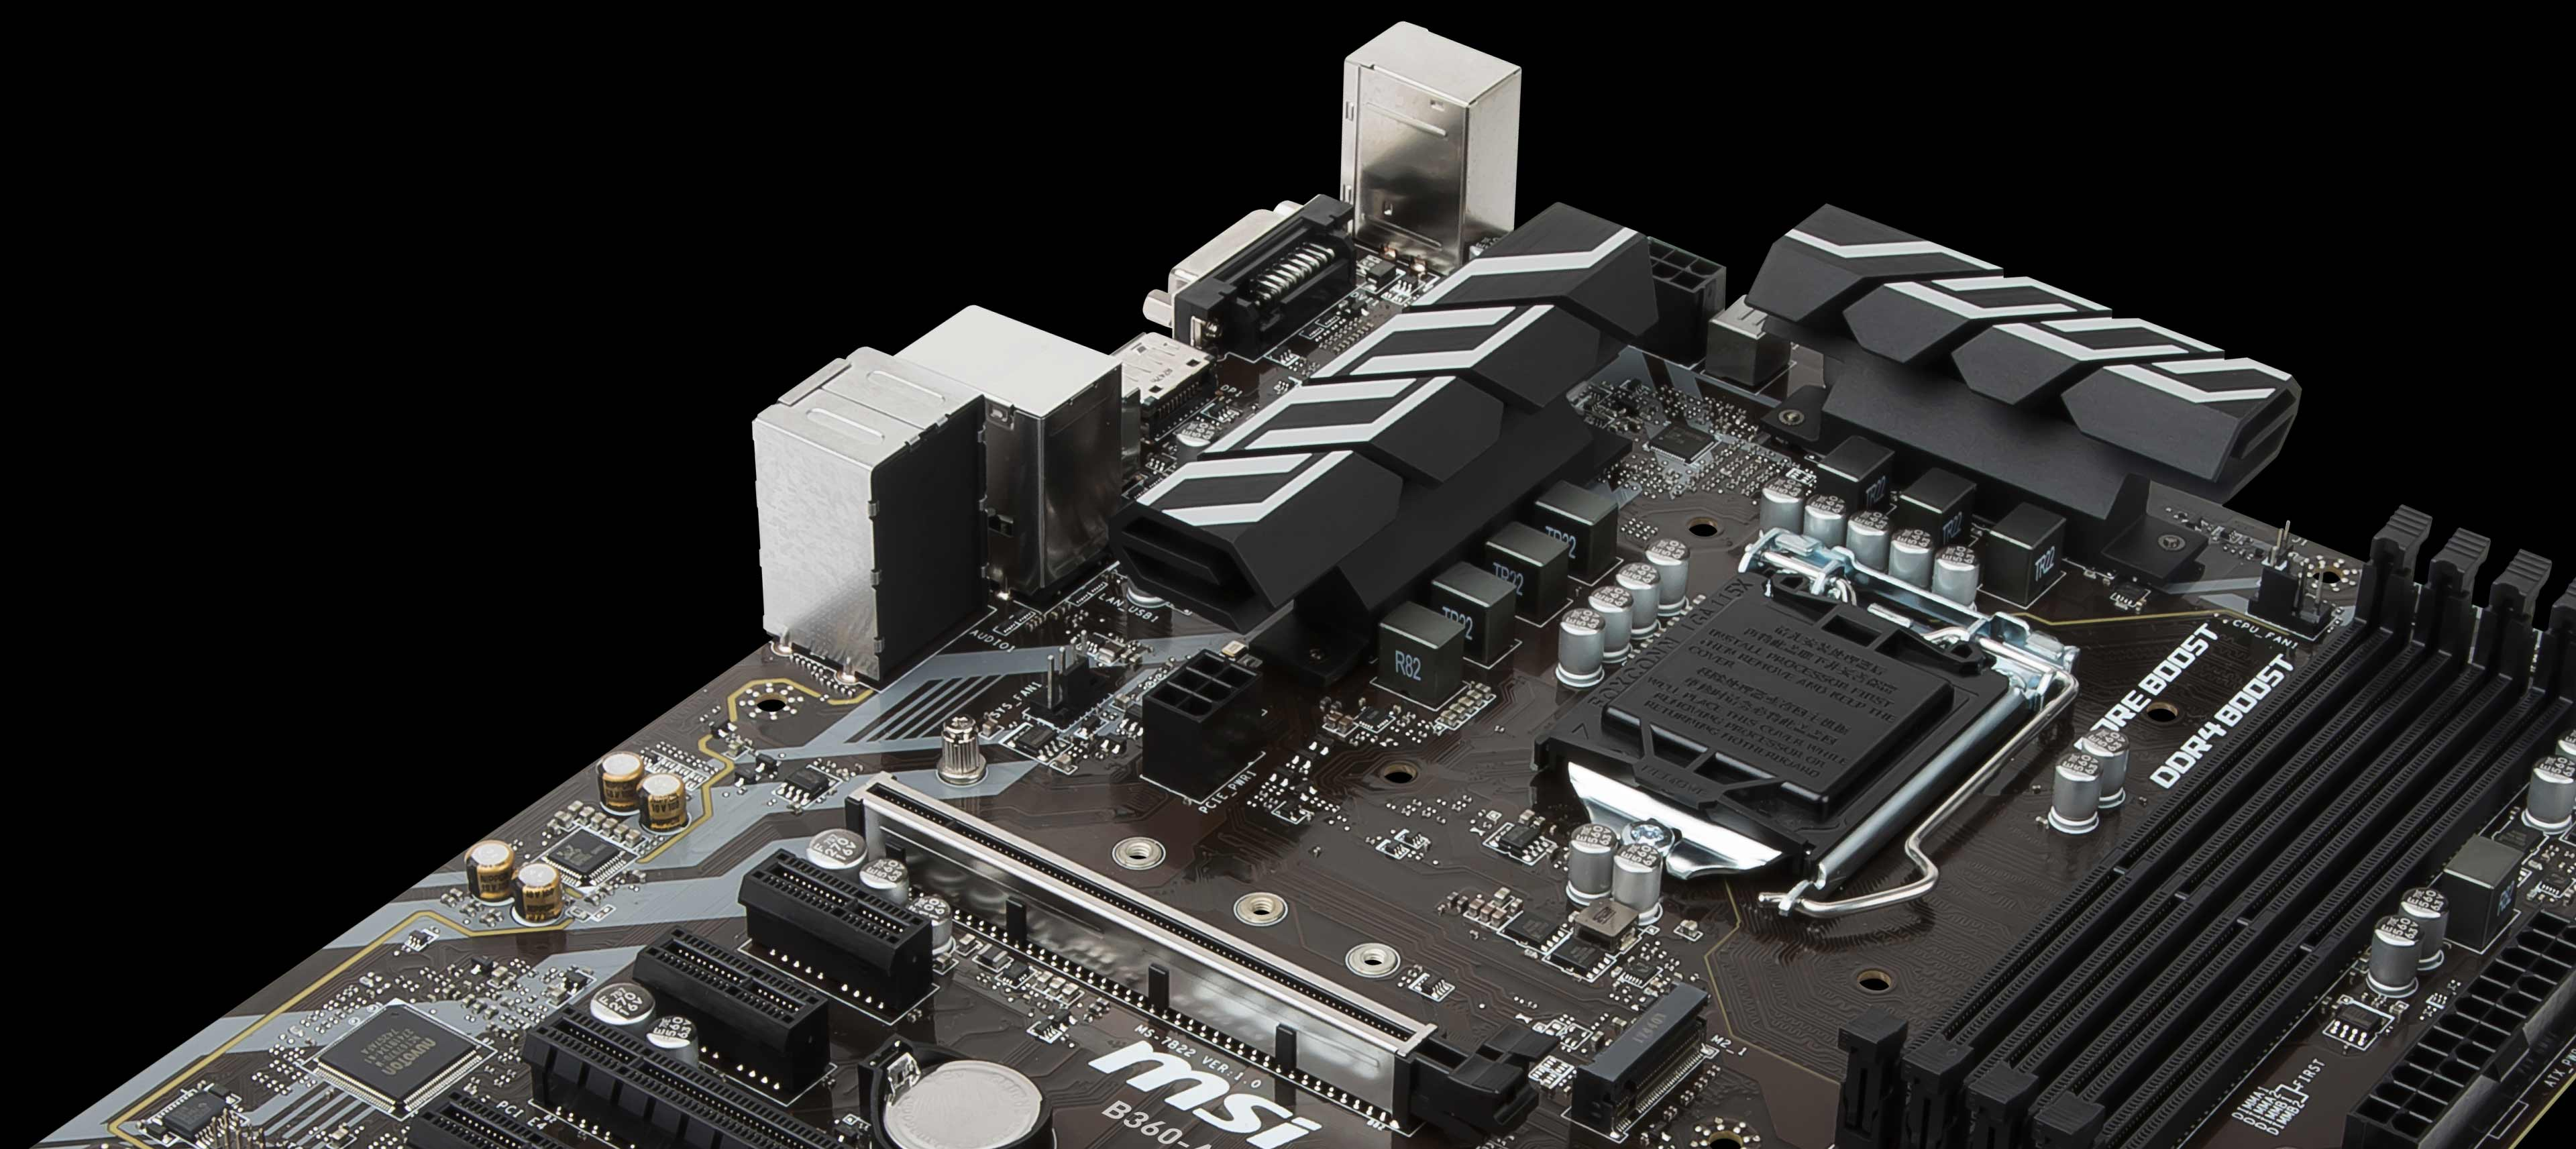 B360 A Pro Motherboard The World Leader In Design Cpu Components Diagram Free Image About Wiring And Schematic Stay Cool